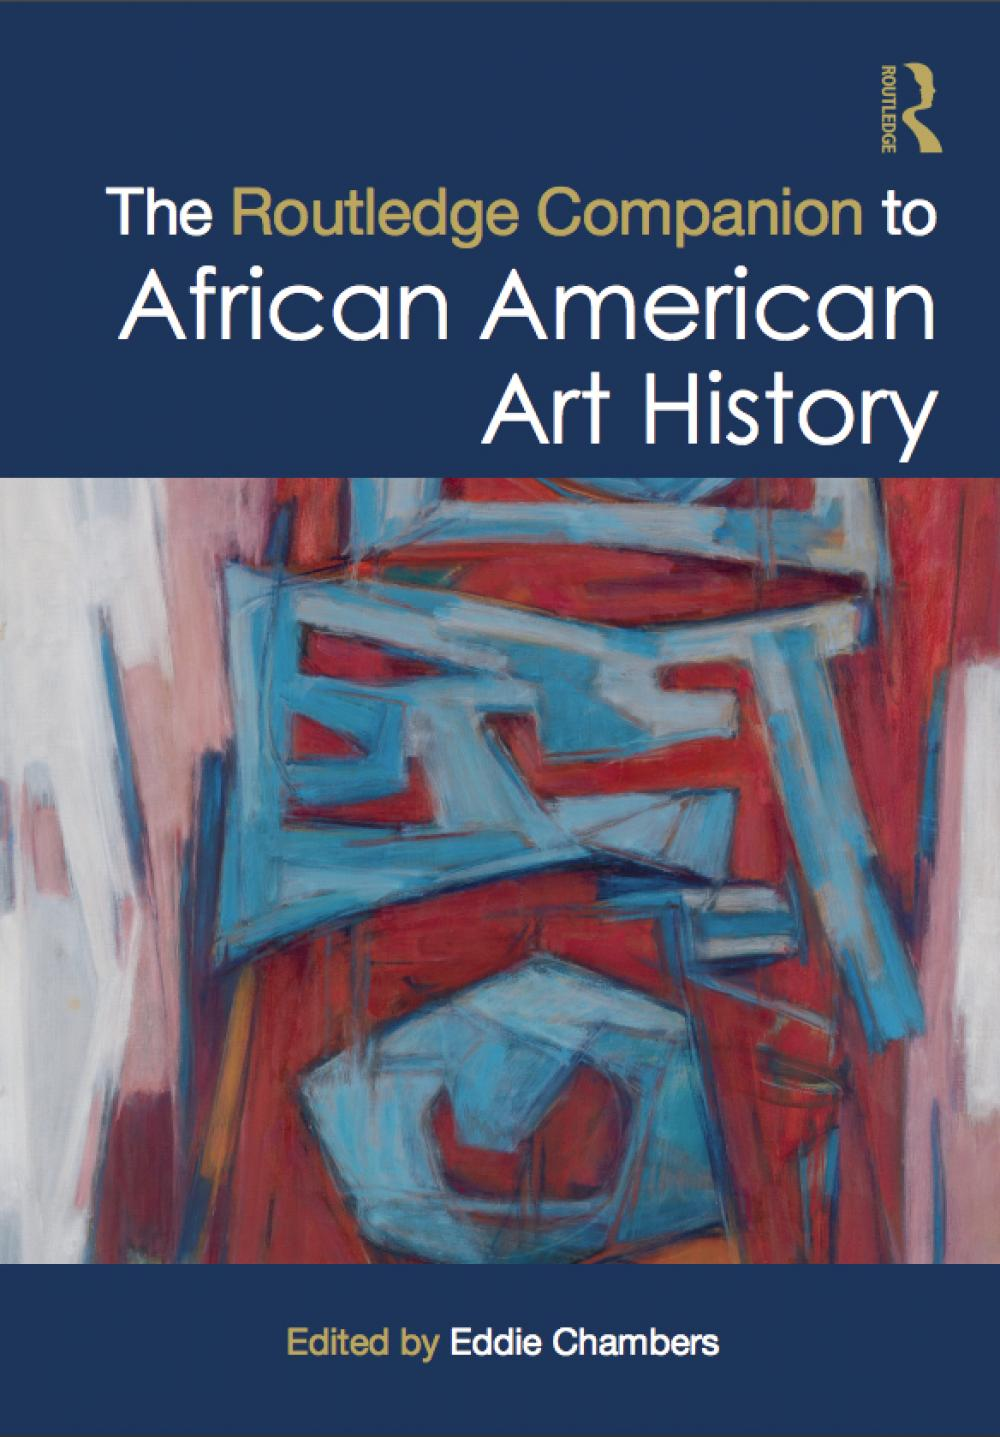 Book cove for routledge companion to african american art history written by preeminent UT Austin professor Eddie Chambers that questions role and nature of categorization